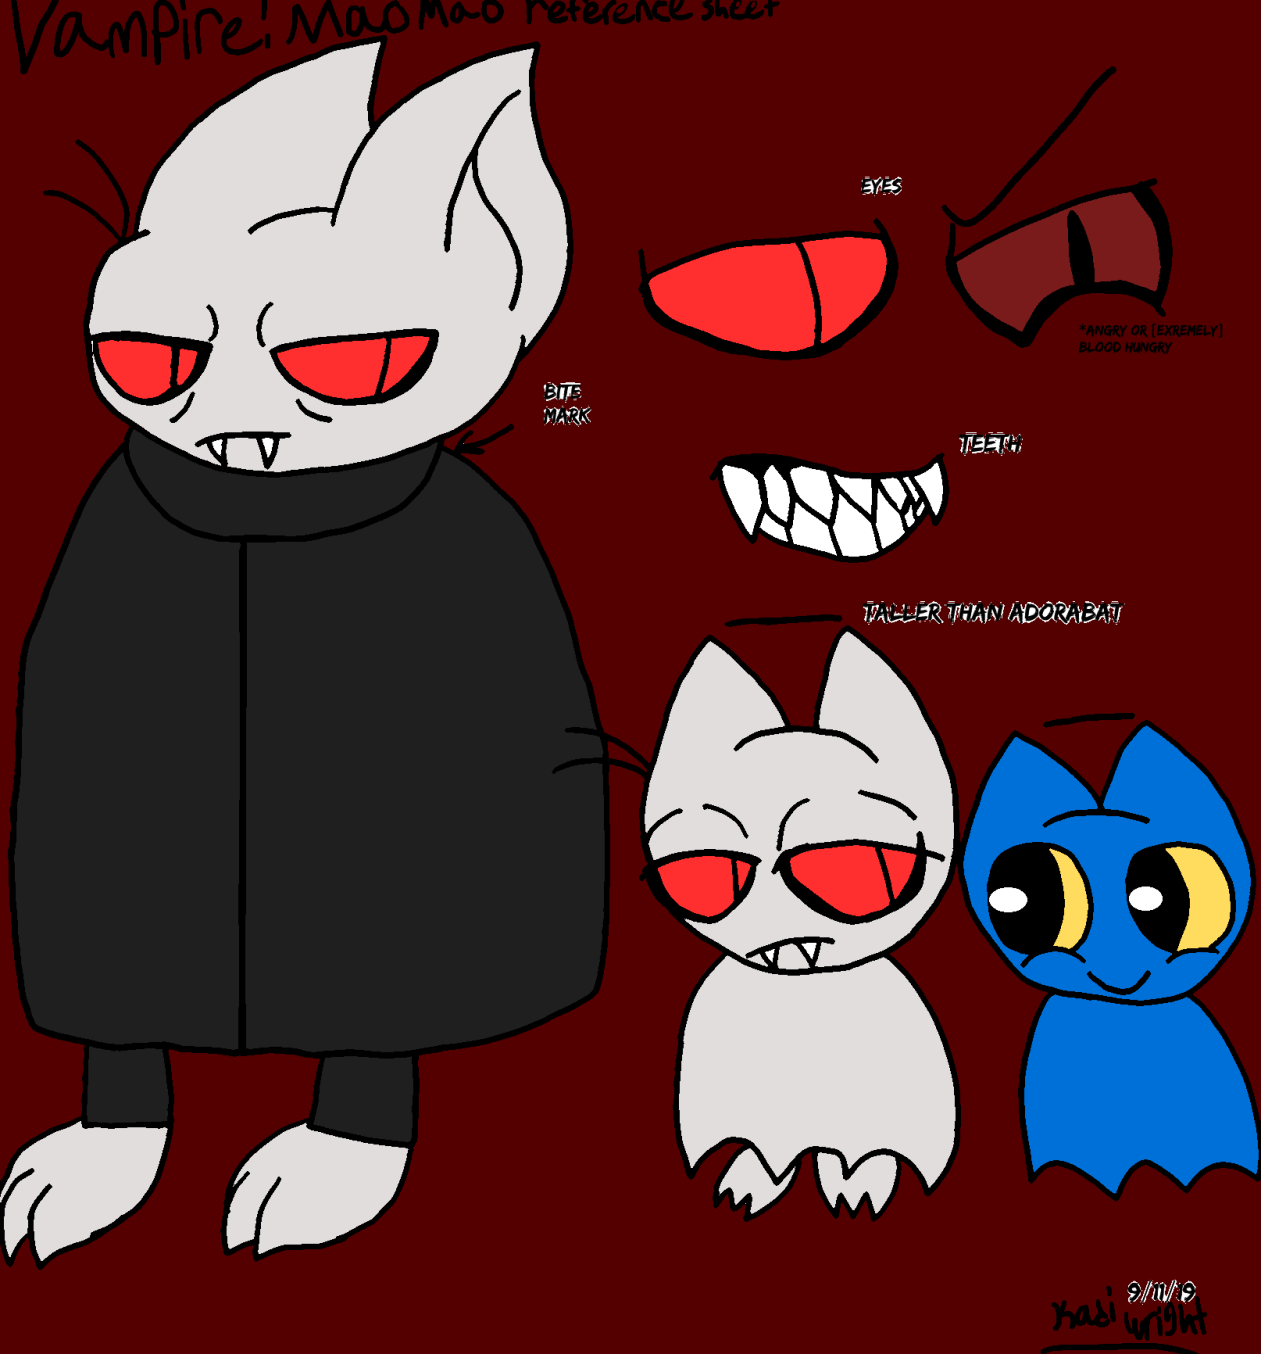 Mmhoph Vampire Mao Mao Reference Sheet By Kadiandsonic On Deviantart Adorabat scream (only obtainable by doing /tag @p add purehearted). mmhoph vampire mao mao reference sheet